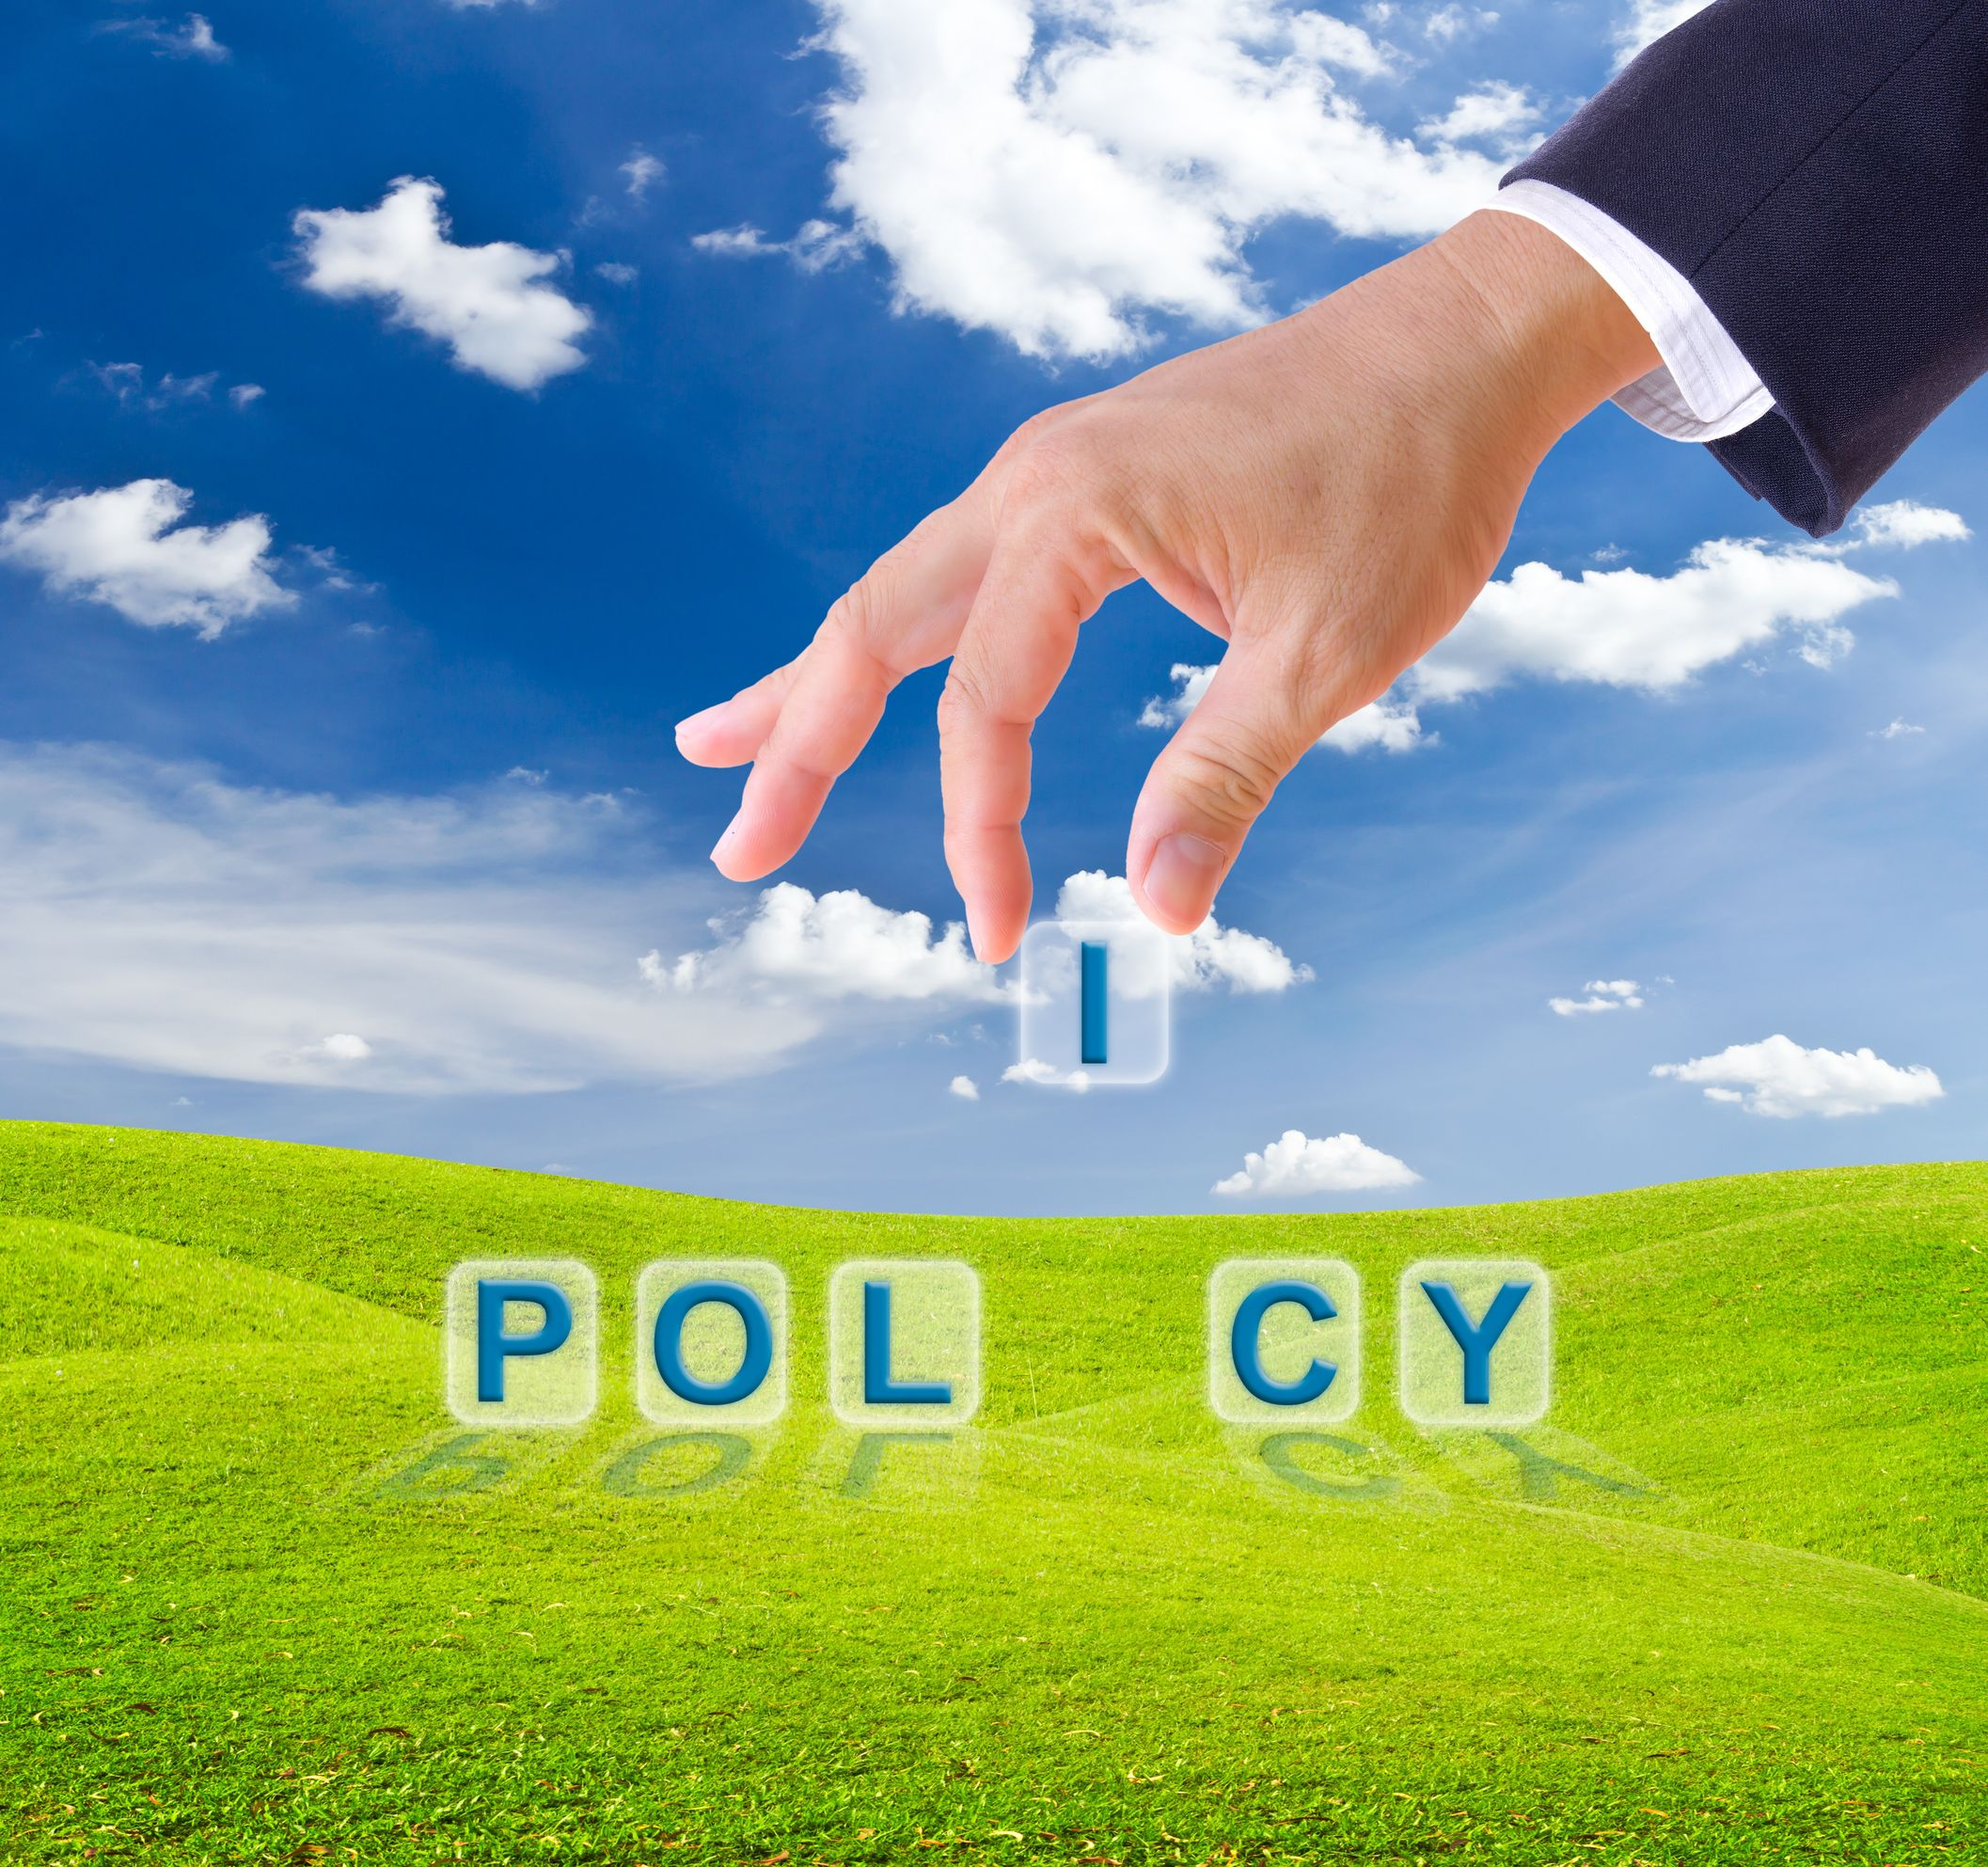 European Chemical Policy and Regulation